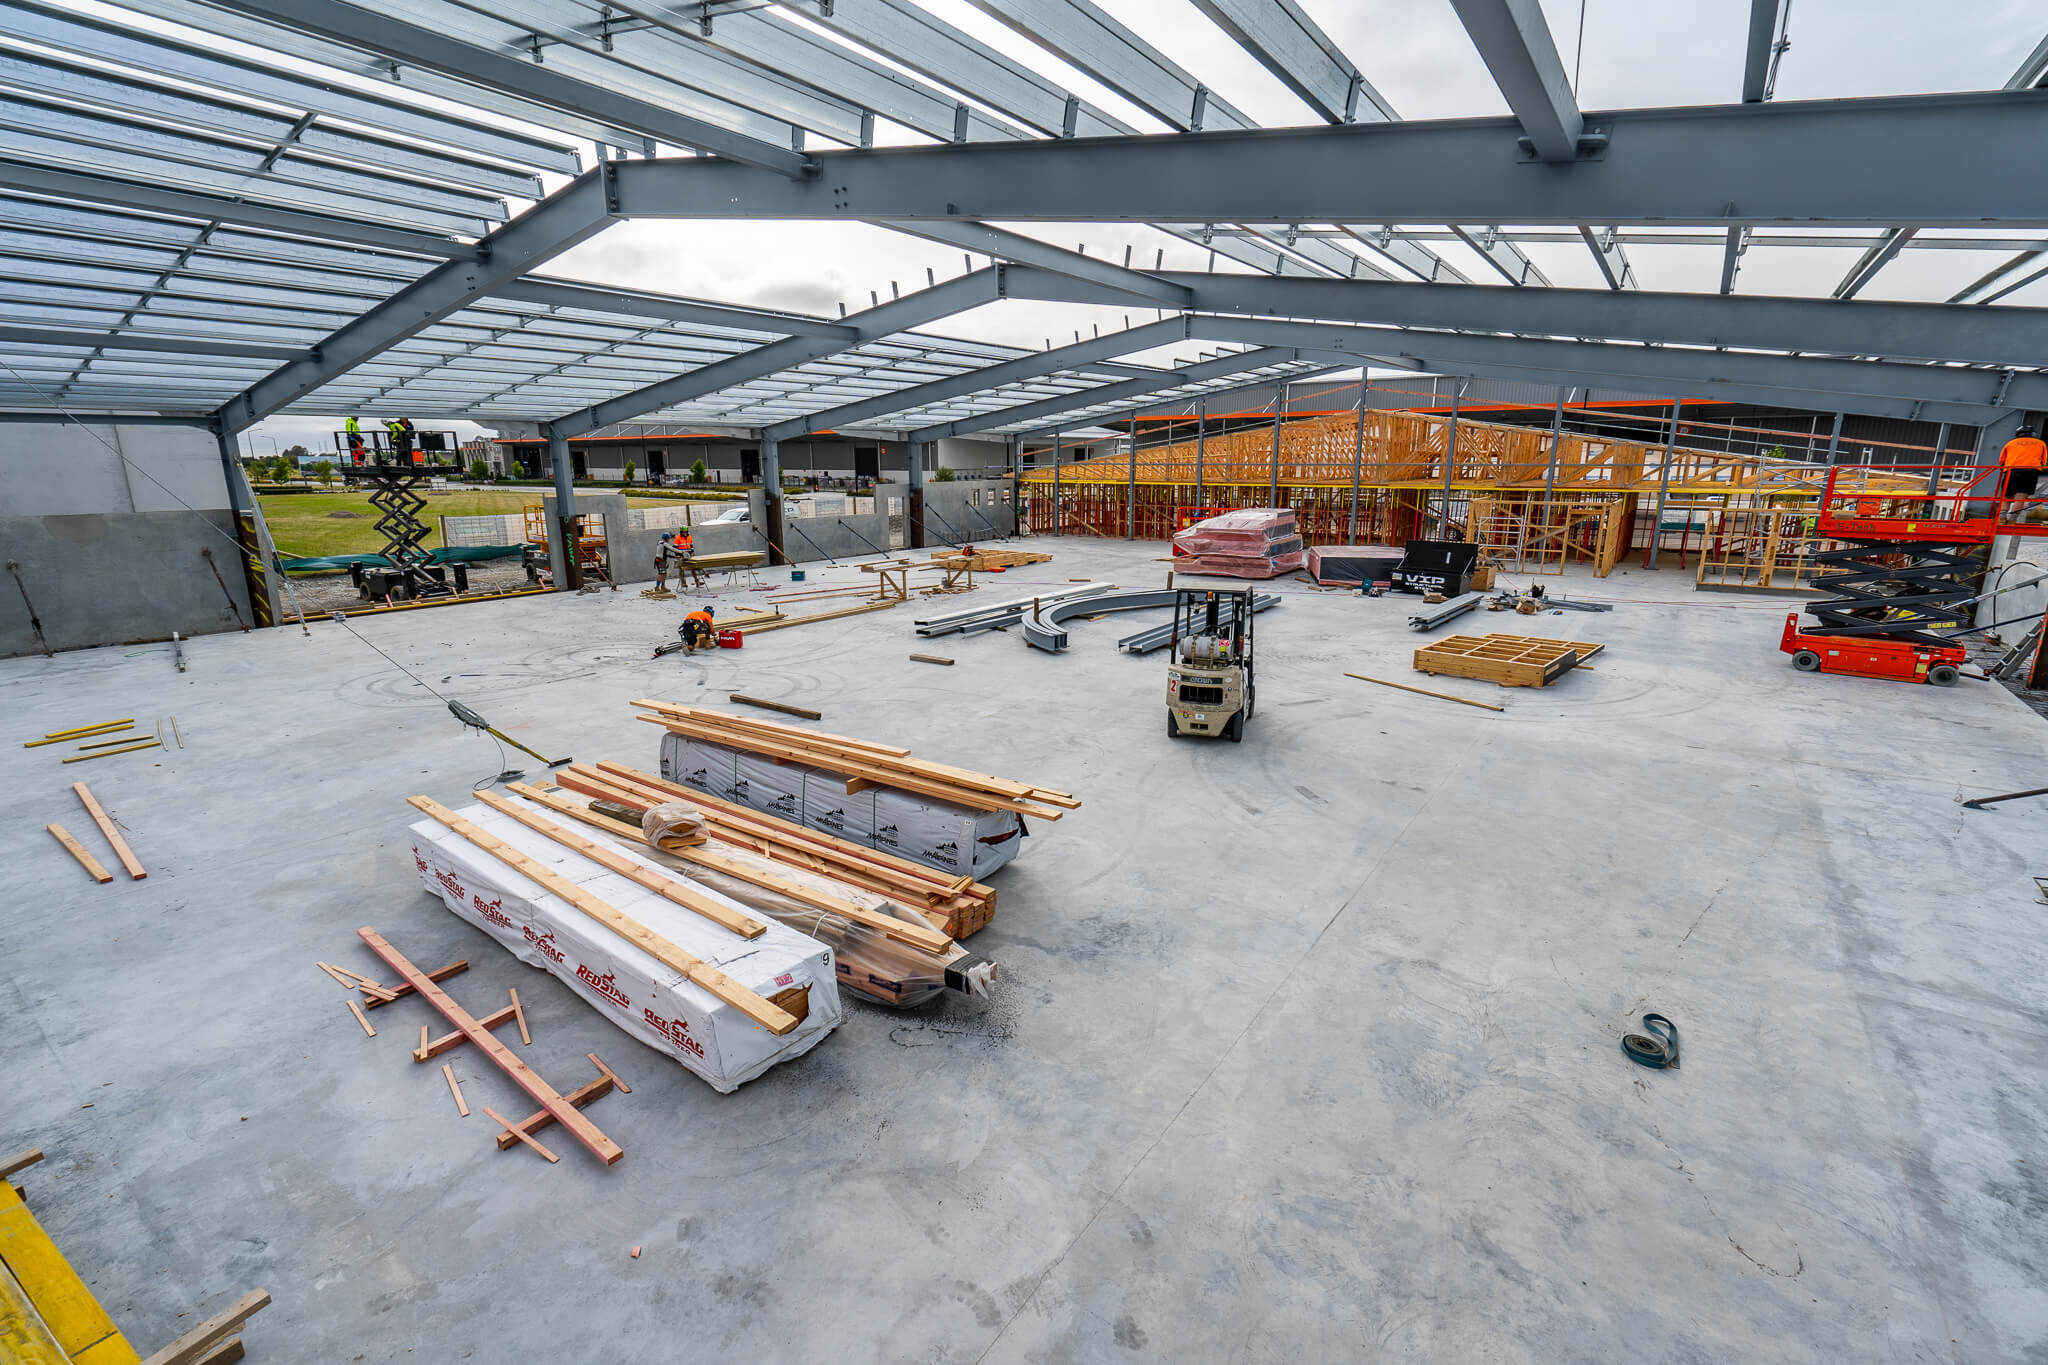 bg_cooke_construction_structural_steel_13-12-19_momac_small_11